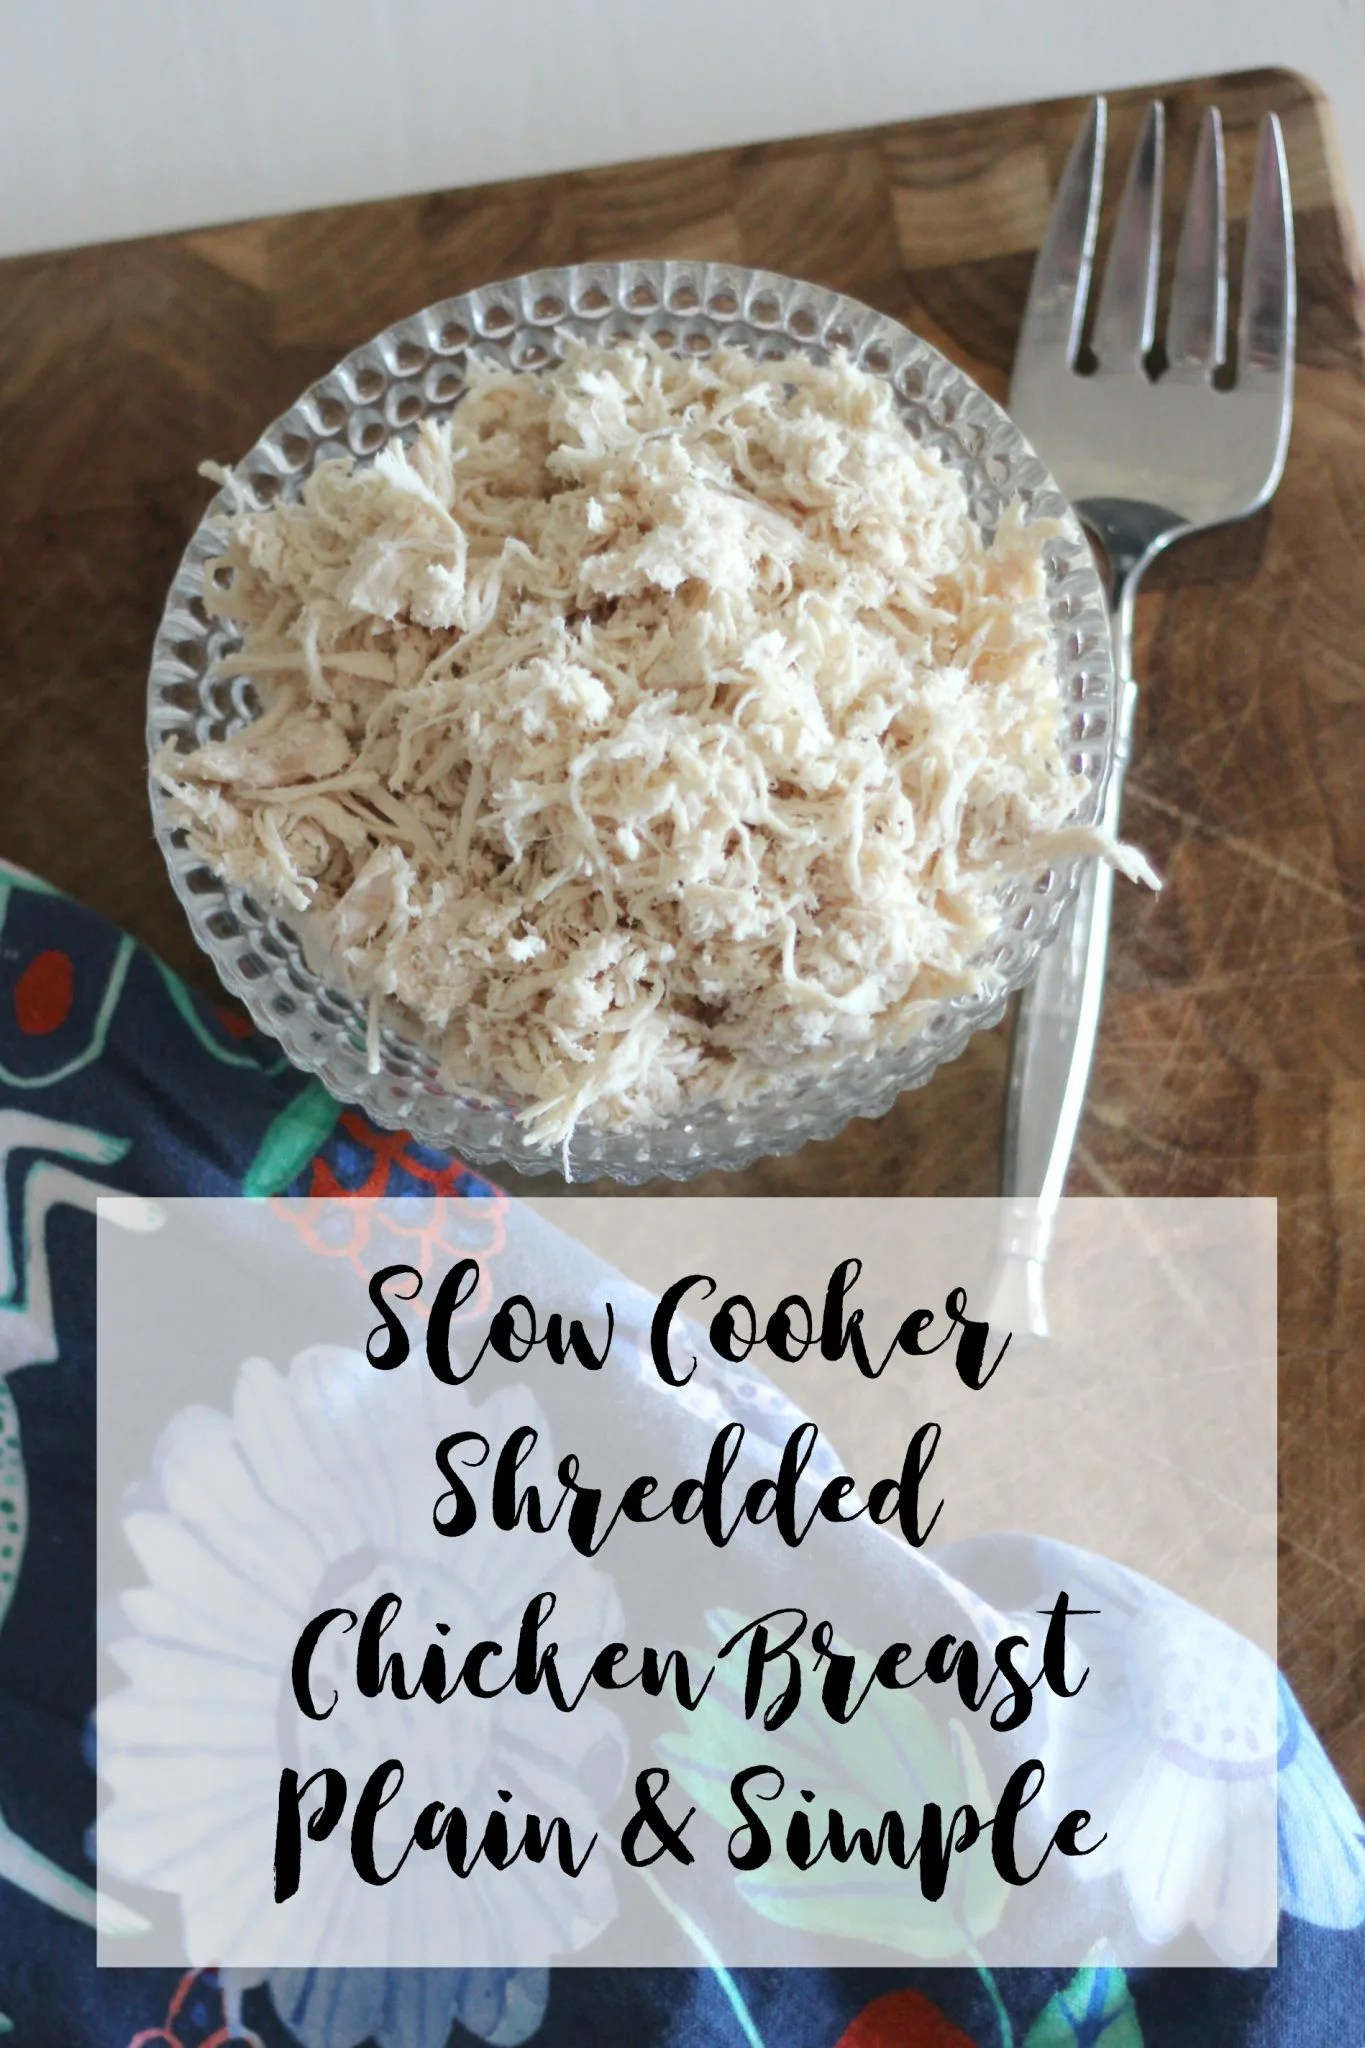 Slow Cooker Shredded Chicken Breast is an easy way to prepare chicken and to have it ready to go for the week. It's perfect for the meal prep for a low carb diet.